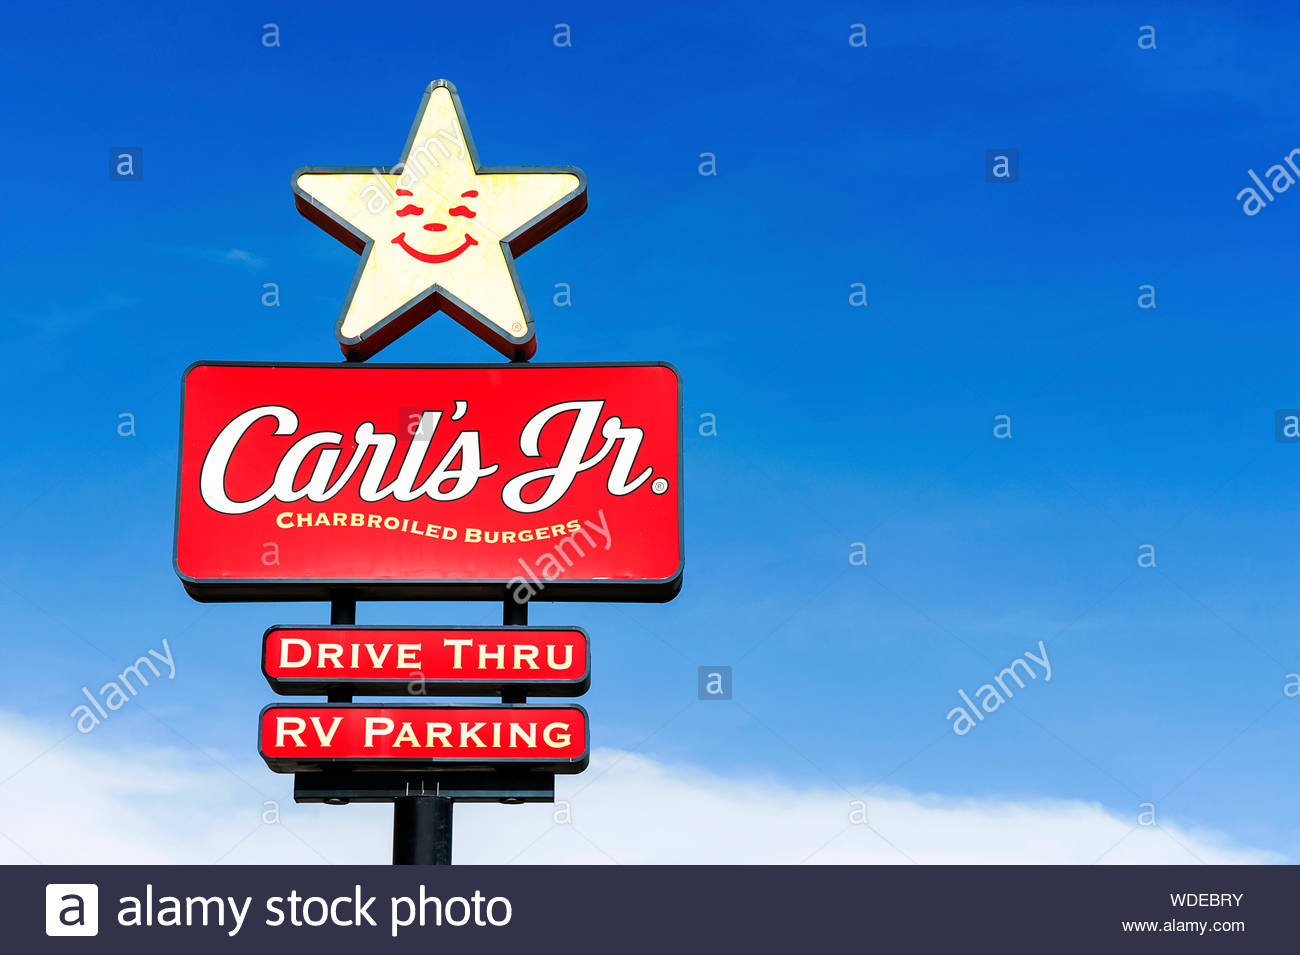 Los Angeles, California, USA - May 29 2015: Carl's Jr. is an American-based quick service restaurant chain operating in 44 states and 38 foreign count Stock Photo